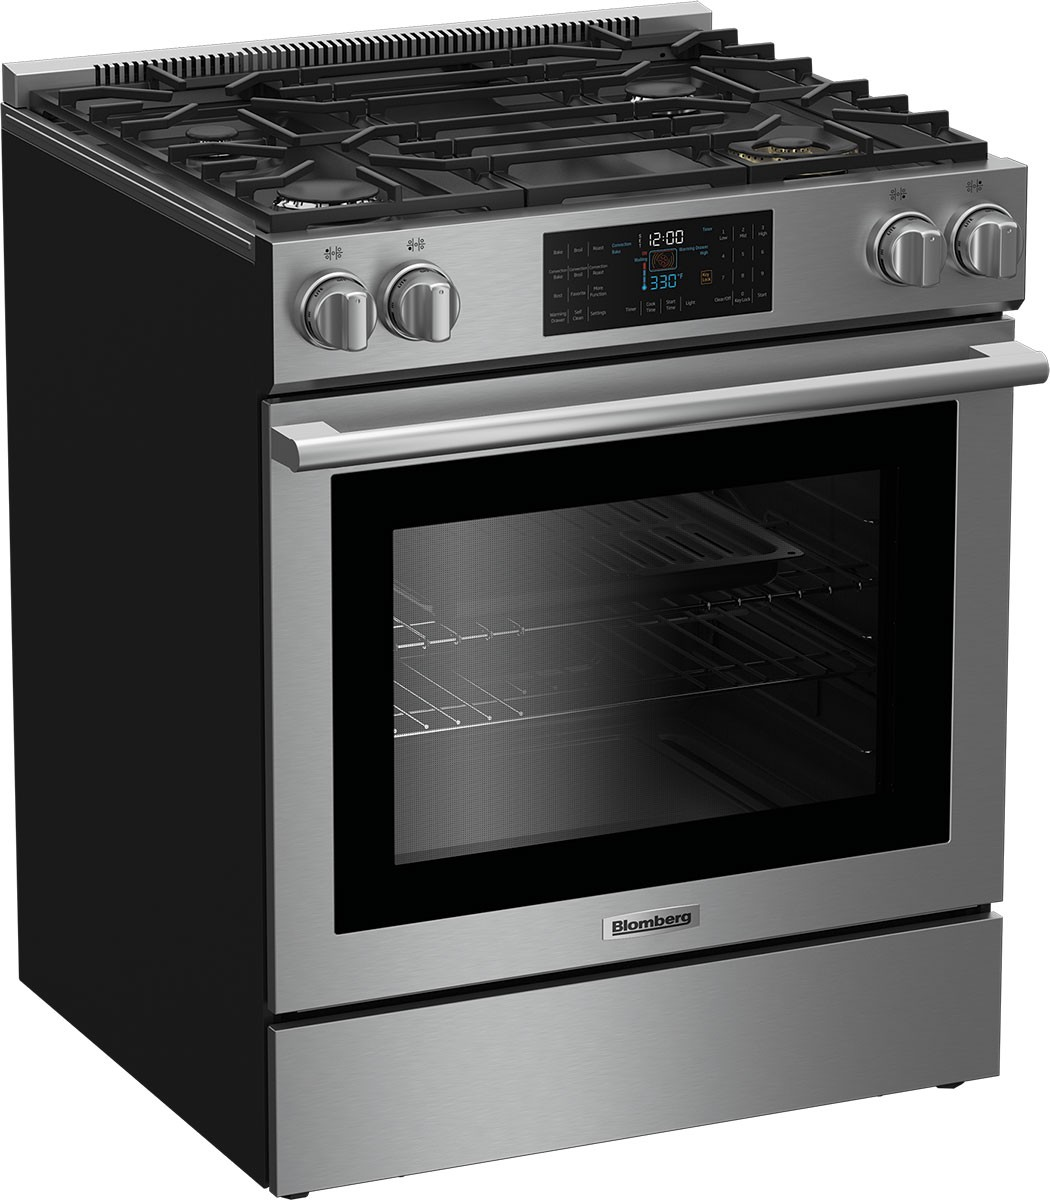 Model: BGR30420SS | Blomberg 30 Inch Slide-In Gas Range